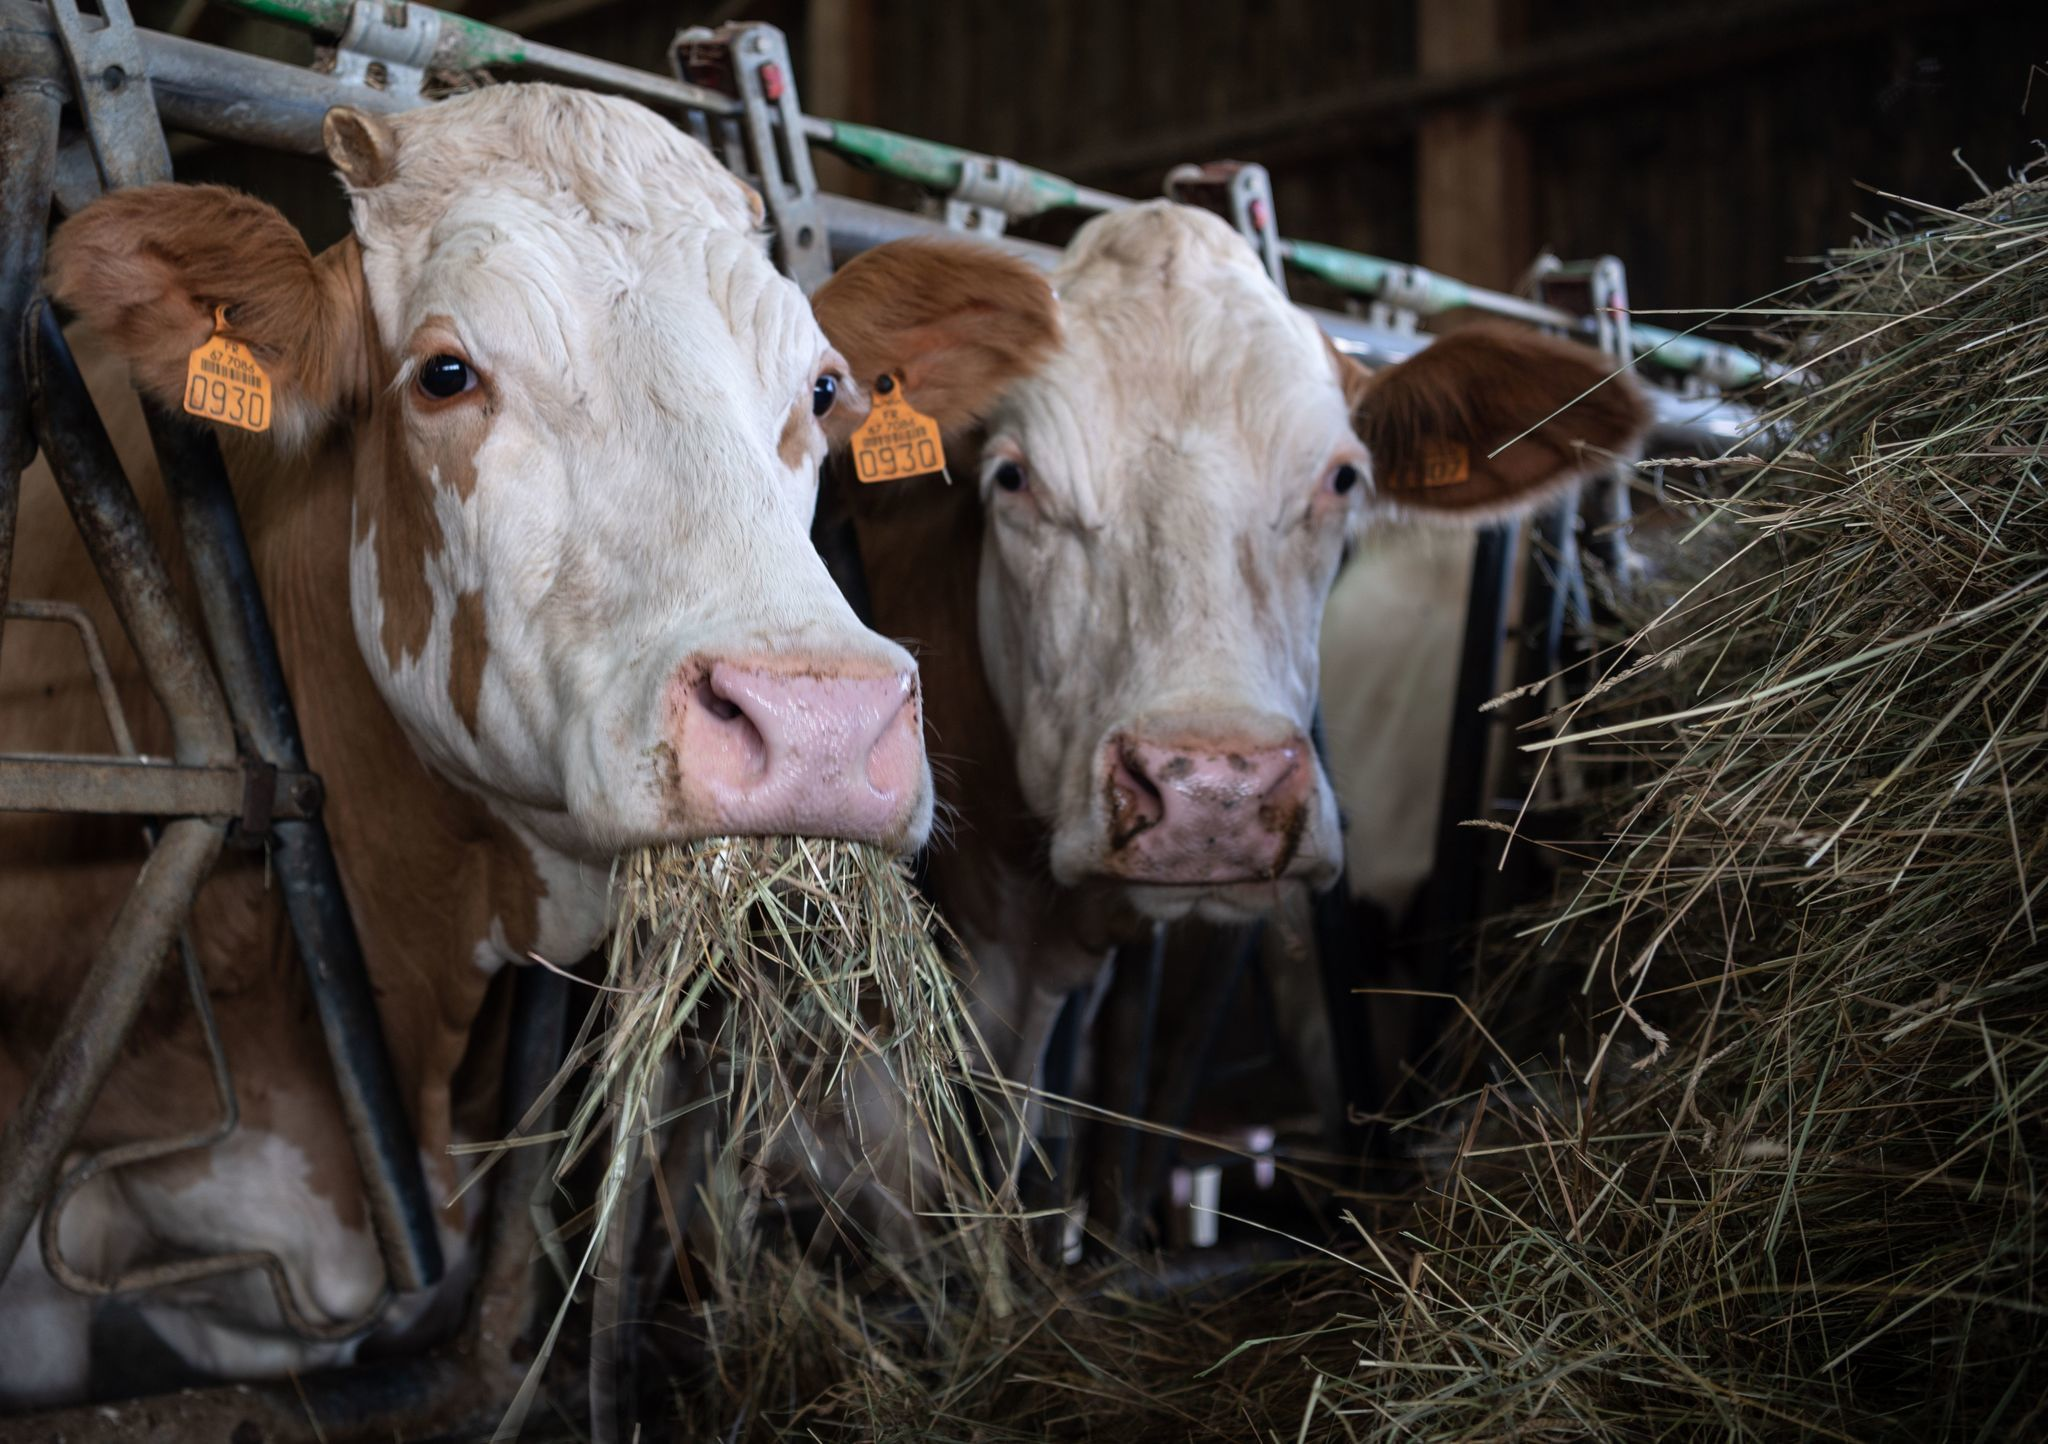 Three men face over 1,400 counts each of sexually abusing farm animals -  The San Diego Union-Tribune